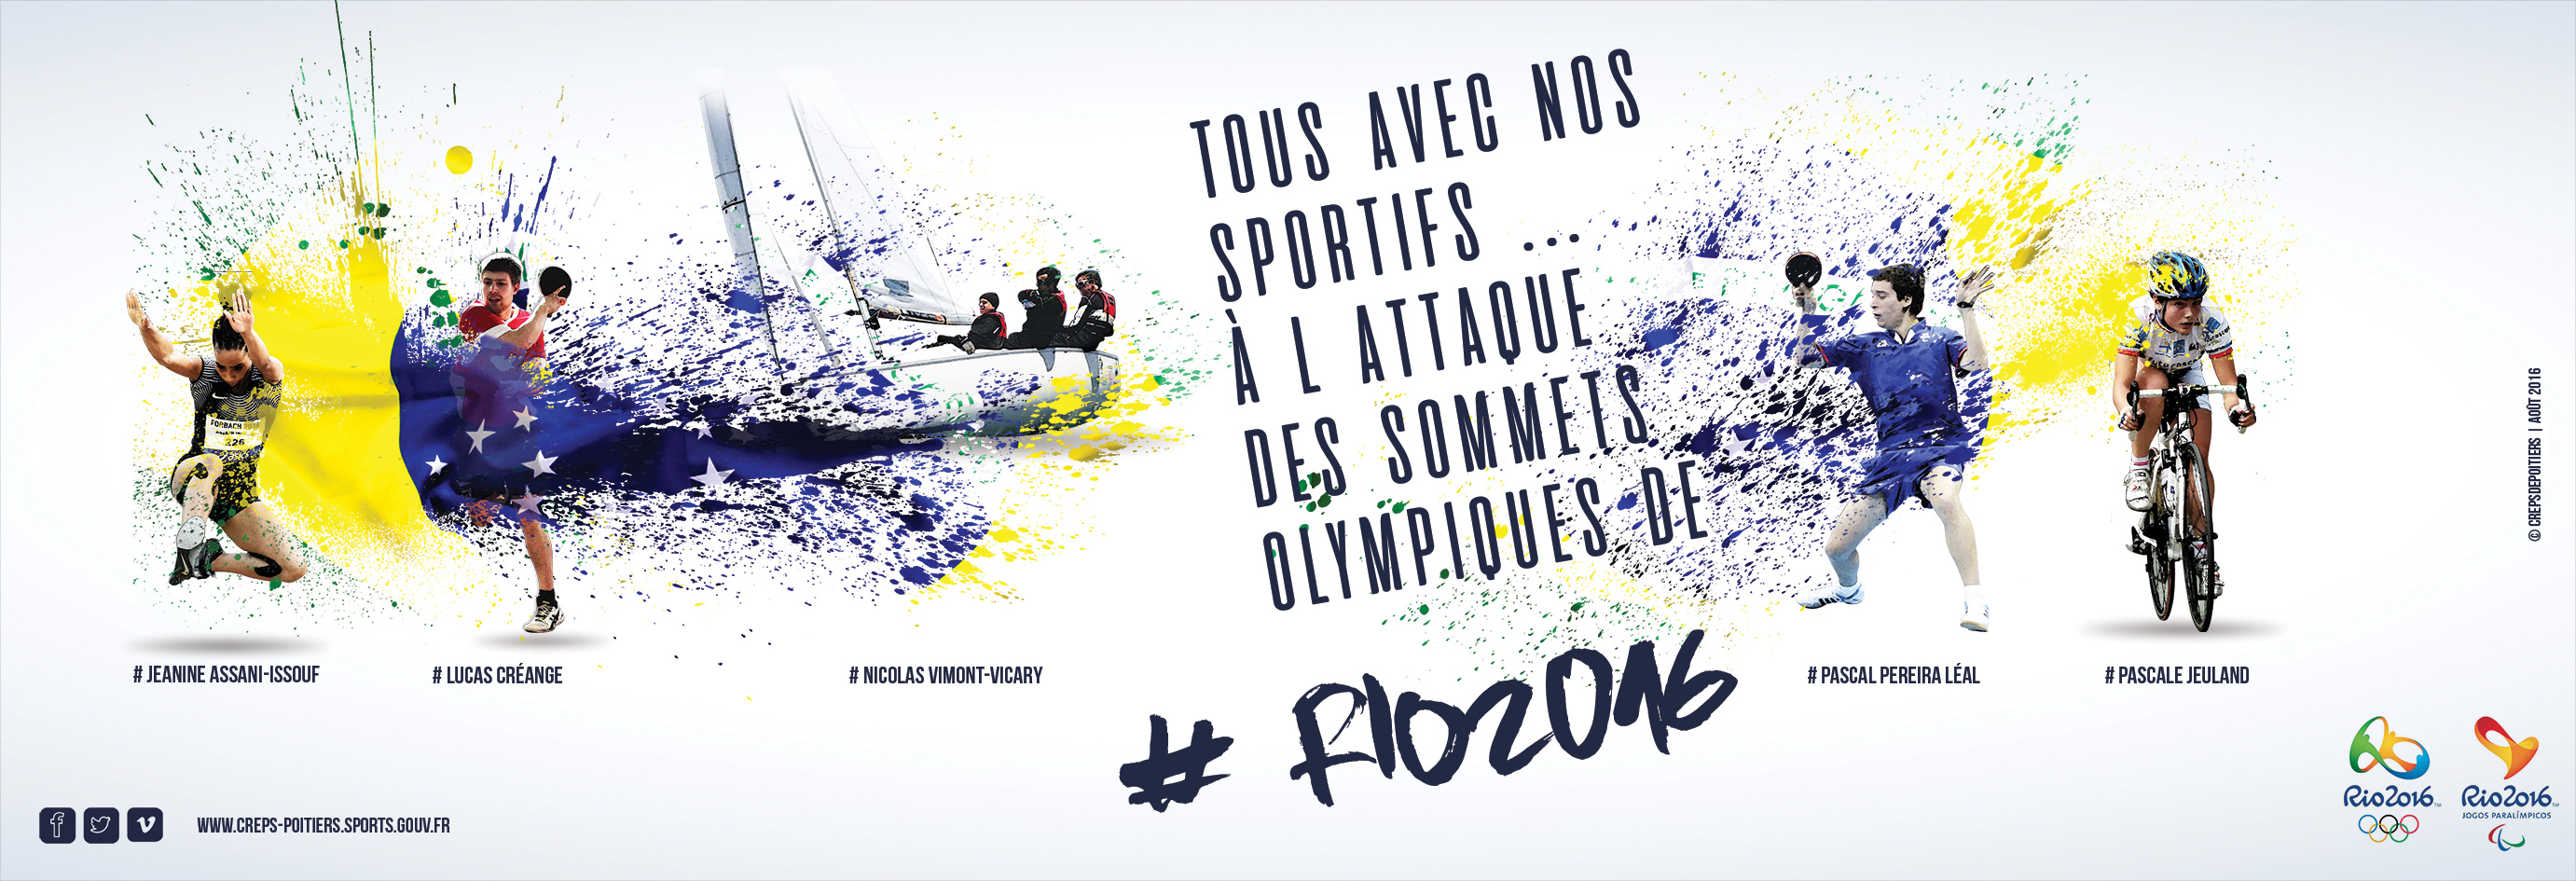 banderole jeux olympiques paralympiques 2016 WEB intranet